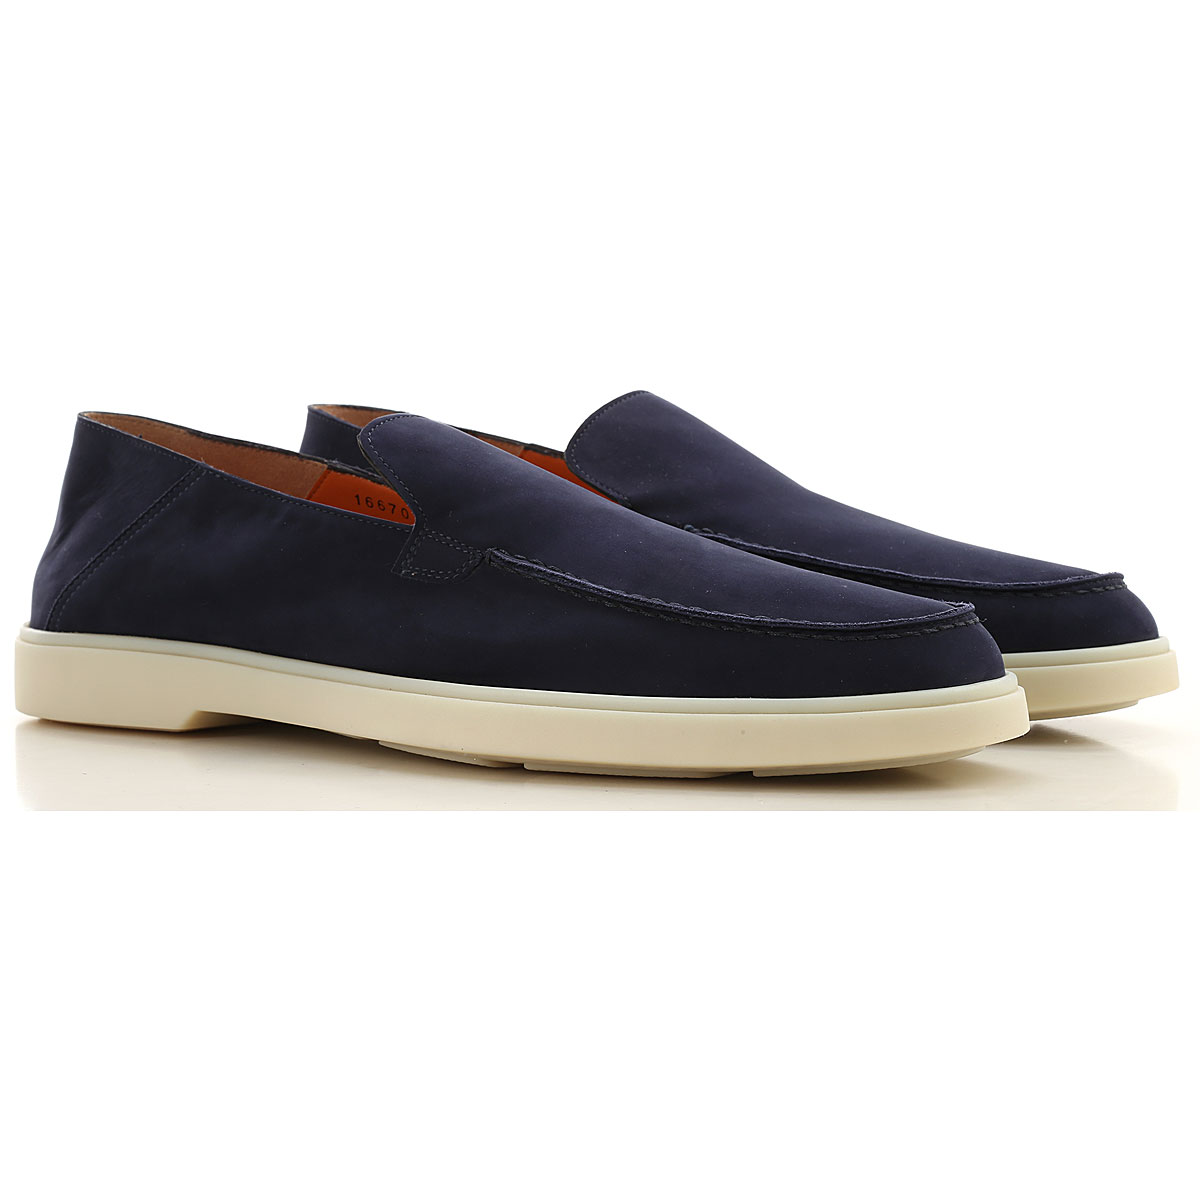 Santoni Slip on Sneakers for Men On Sale in Outlet, navy, Suede leather, 2019, 10 11 12